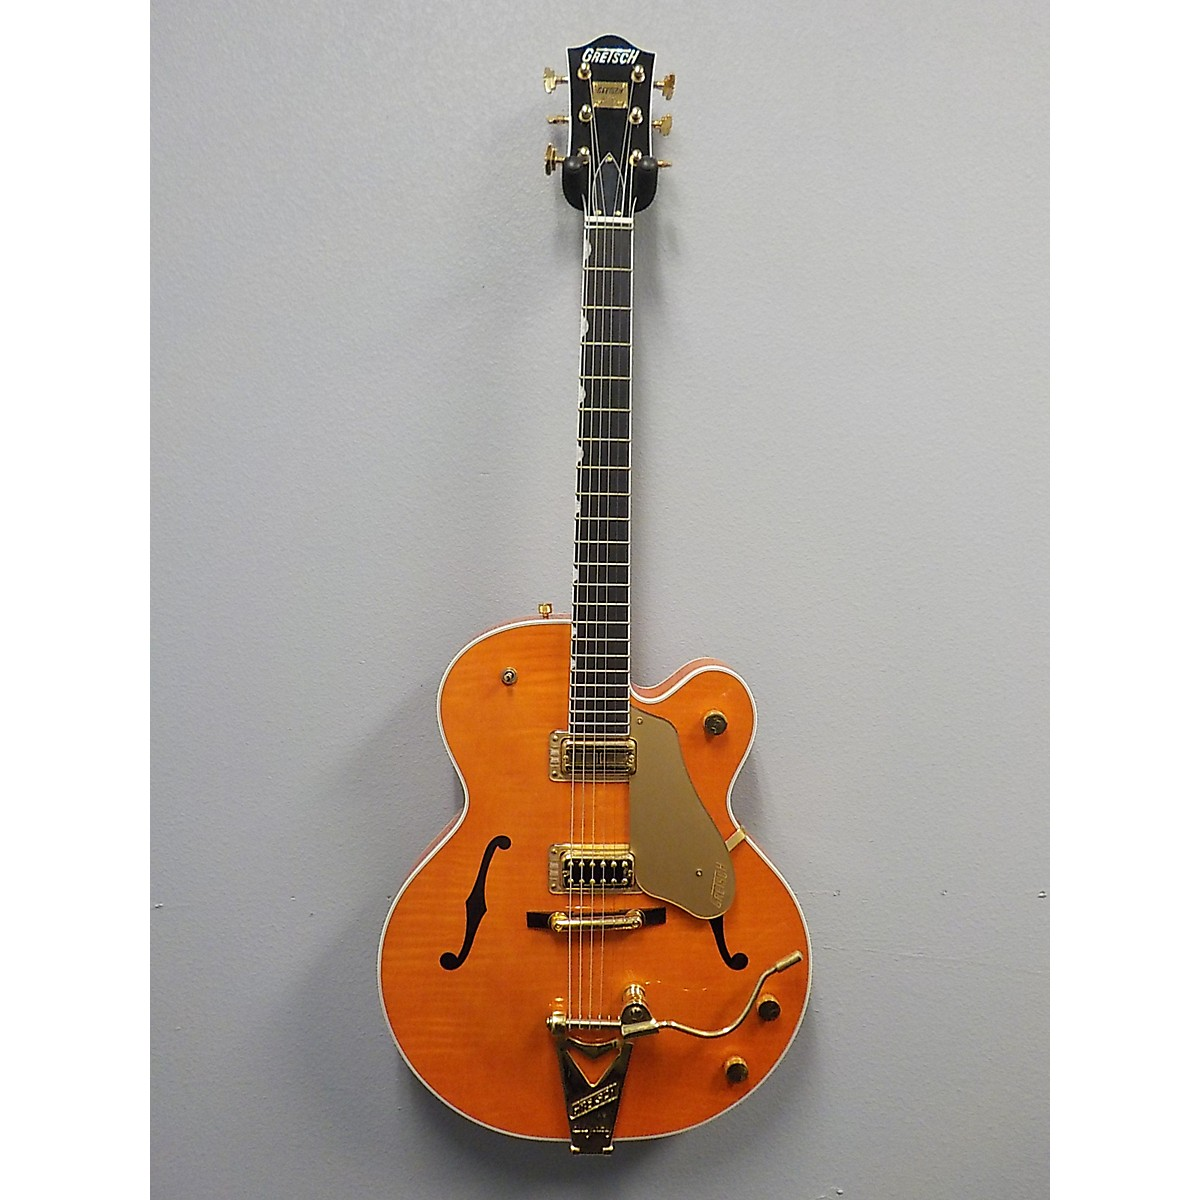 In Store Used Used Gretsch 2000 G6122ncwstn Orange Hollow Body Electric Guitar